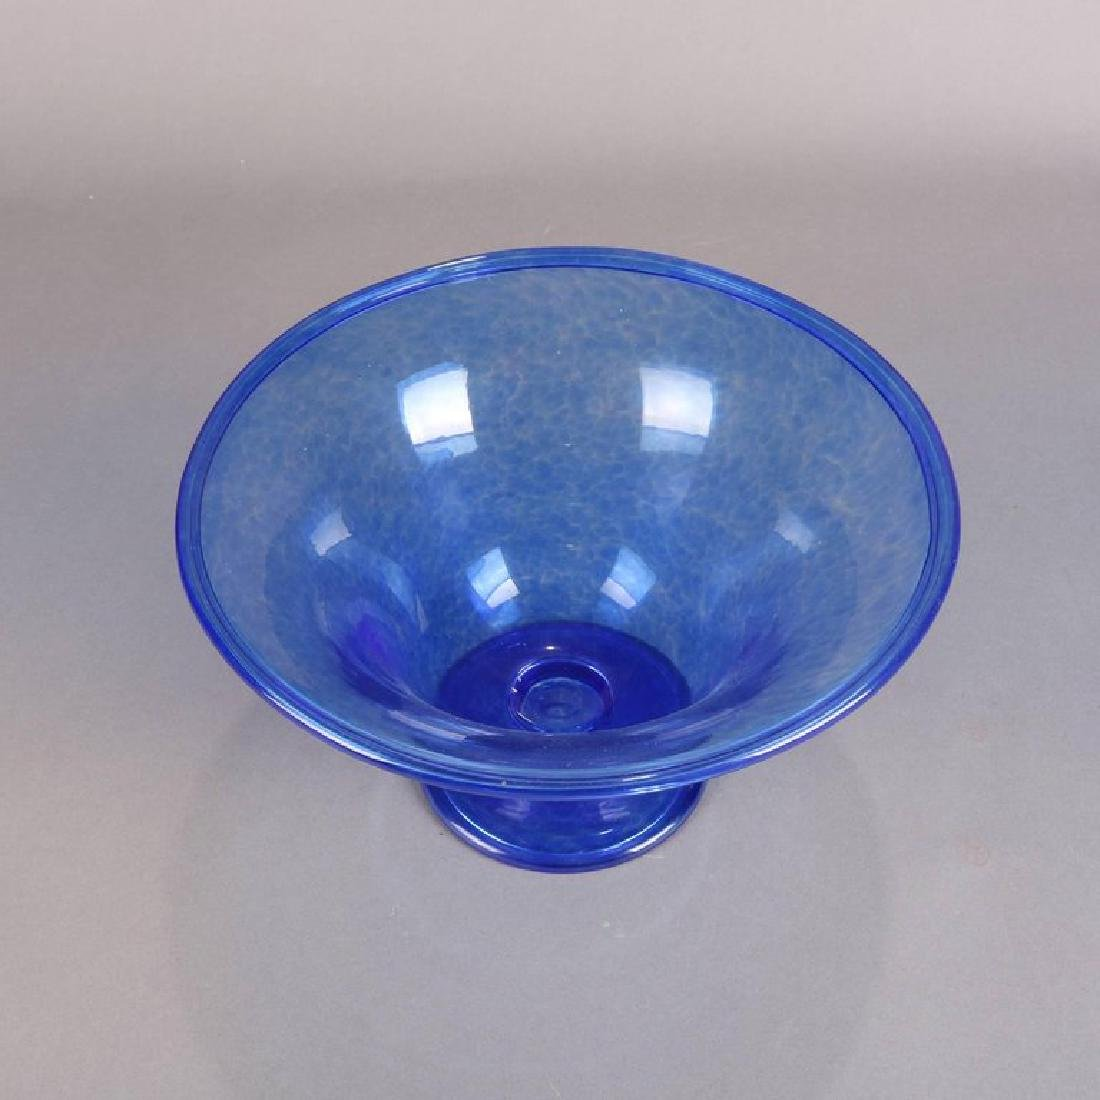 Steuben's Corning Museum of Glass Cobalt Blown Compote - 5